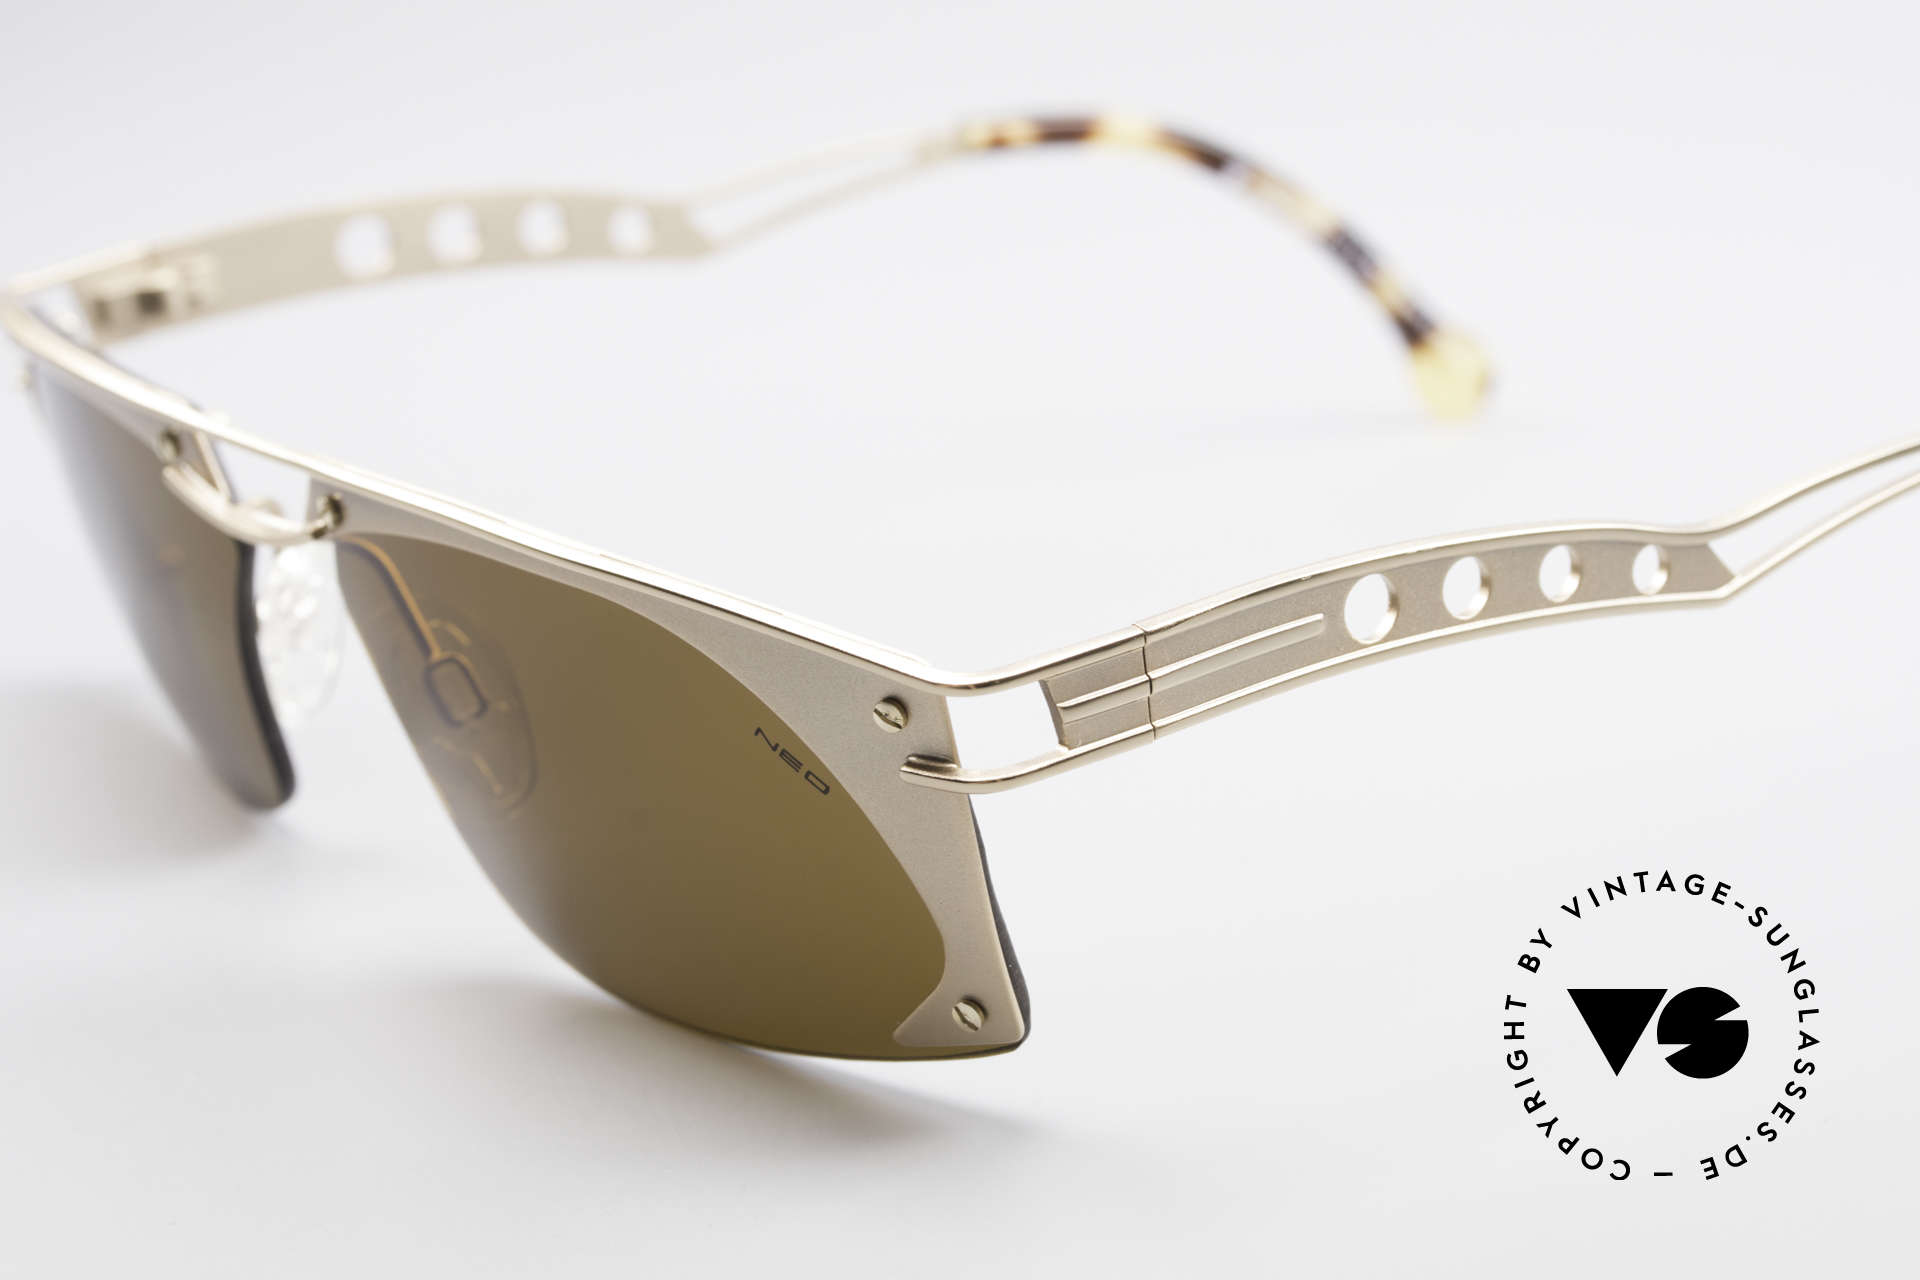 Neostyle Holiday 968 Vintage Steampunk Sunglasses, with dark brown sun lenses (100% UV protection), Made for Men